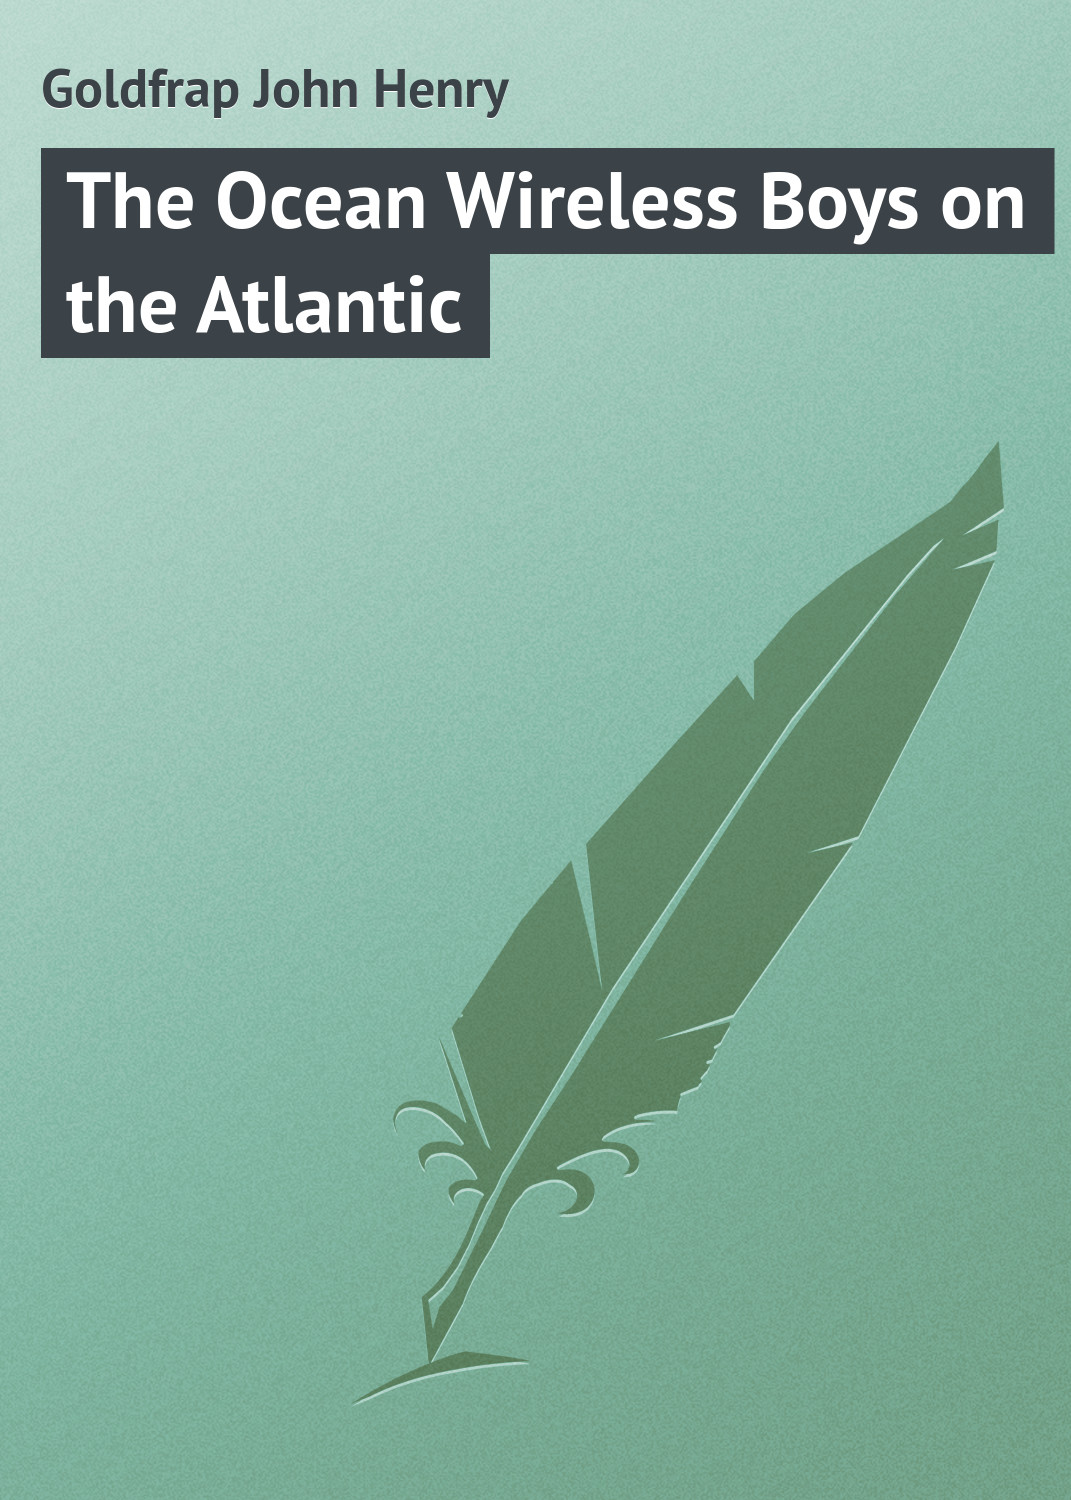 купить Goldfrap John Henry The Ocean Wireless Boys on the Atlantic по цене 0 рублей